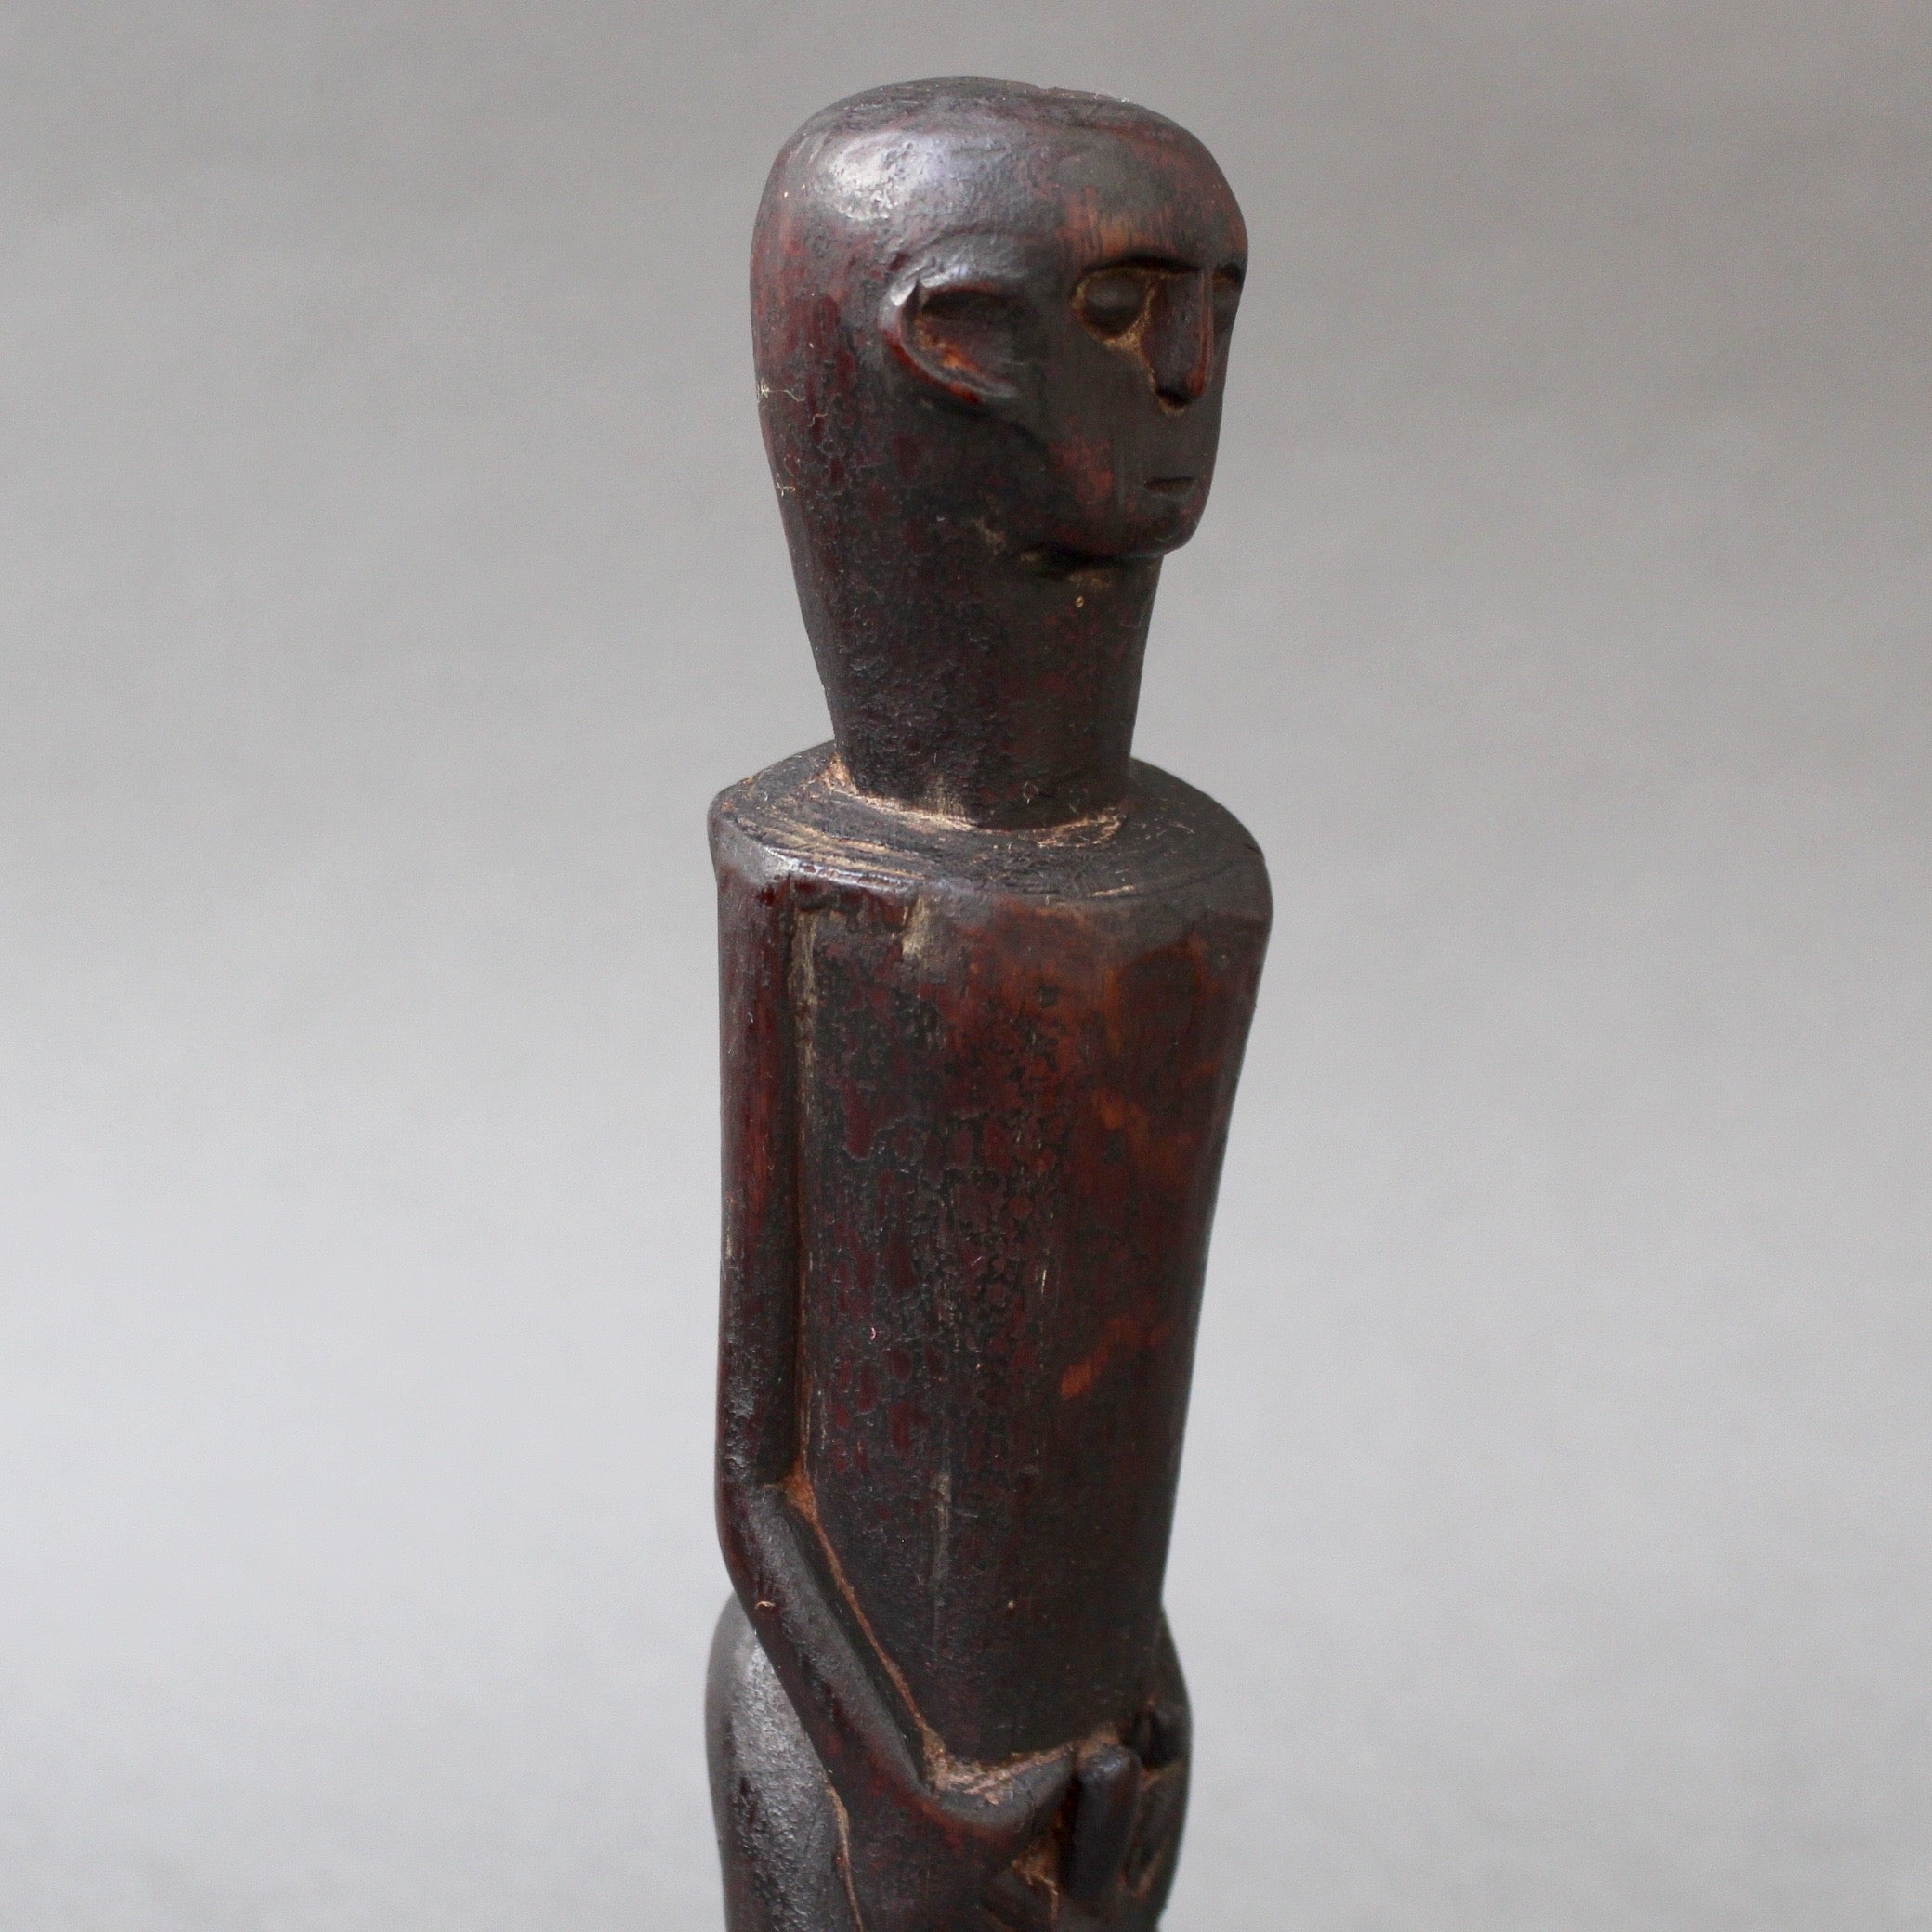 Wooden Sculpture / Carving of Fertility Figure from Sumba Island, Indonesia (circa 1960s - 1970s)